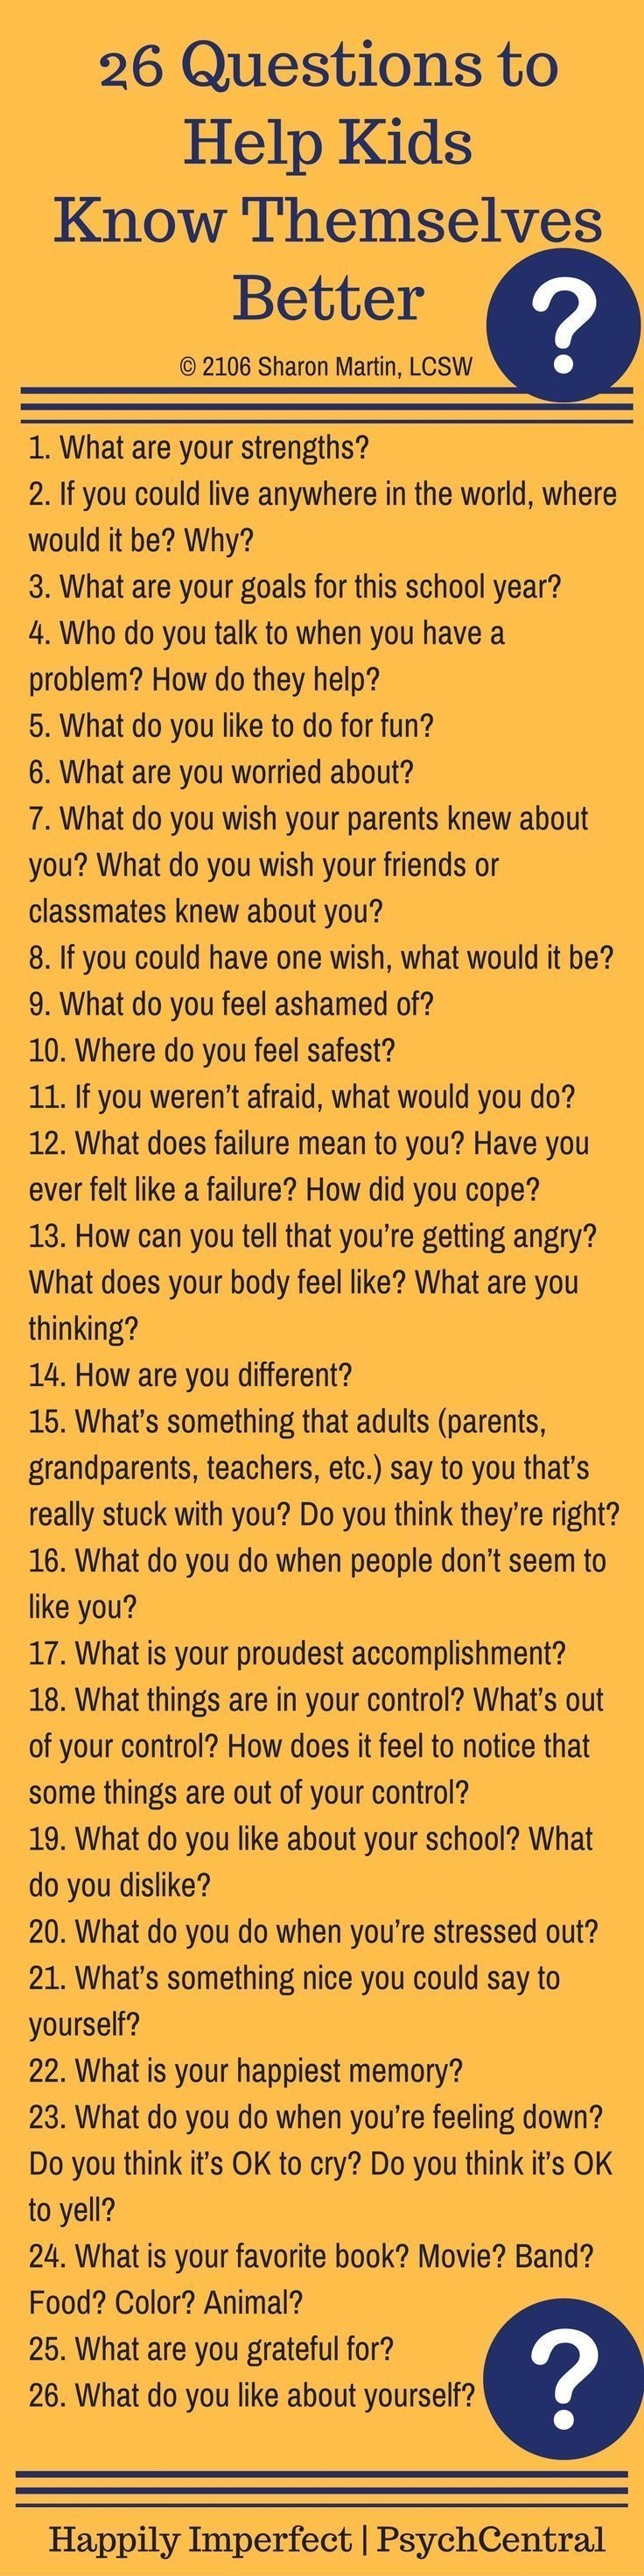 26 Questions to Help Kids Know Themselves Better